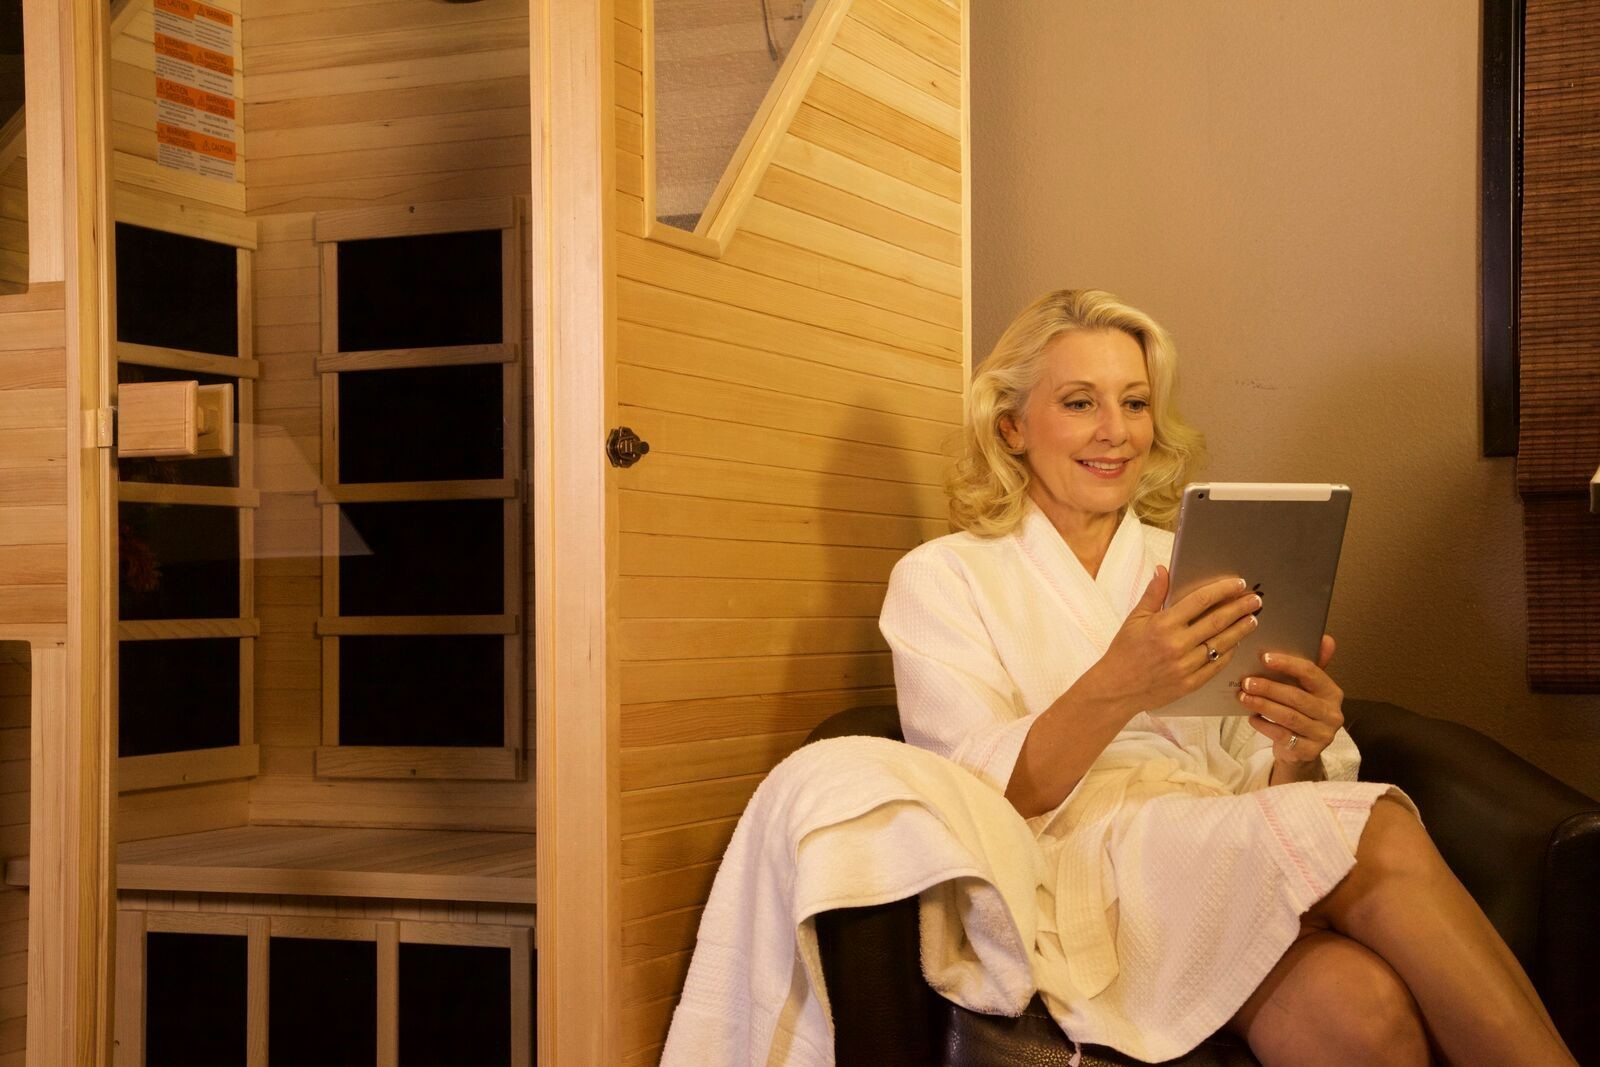 Deciding to Buy a Home Sauna Based on Positive Infrared Sauna Reviews